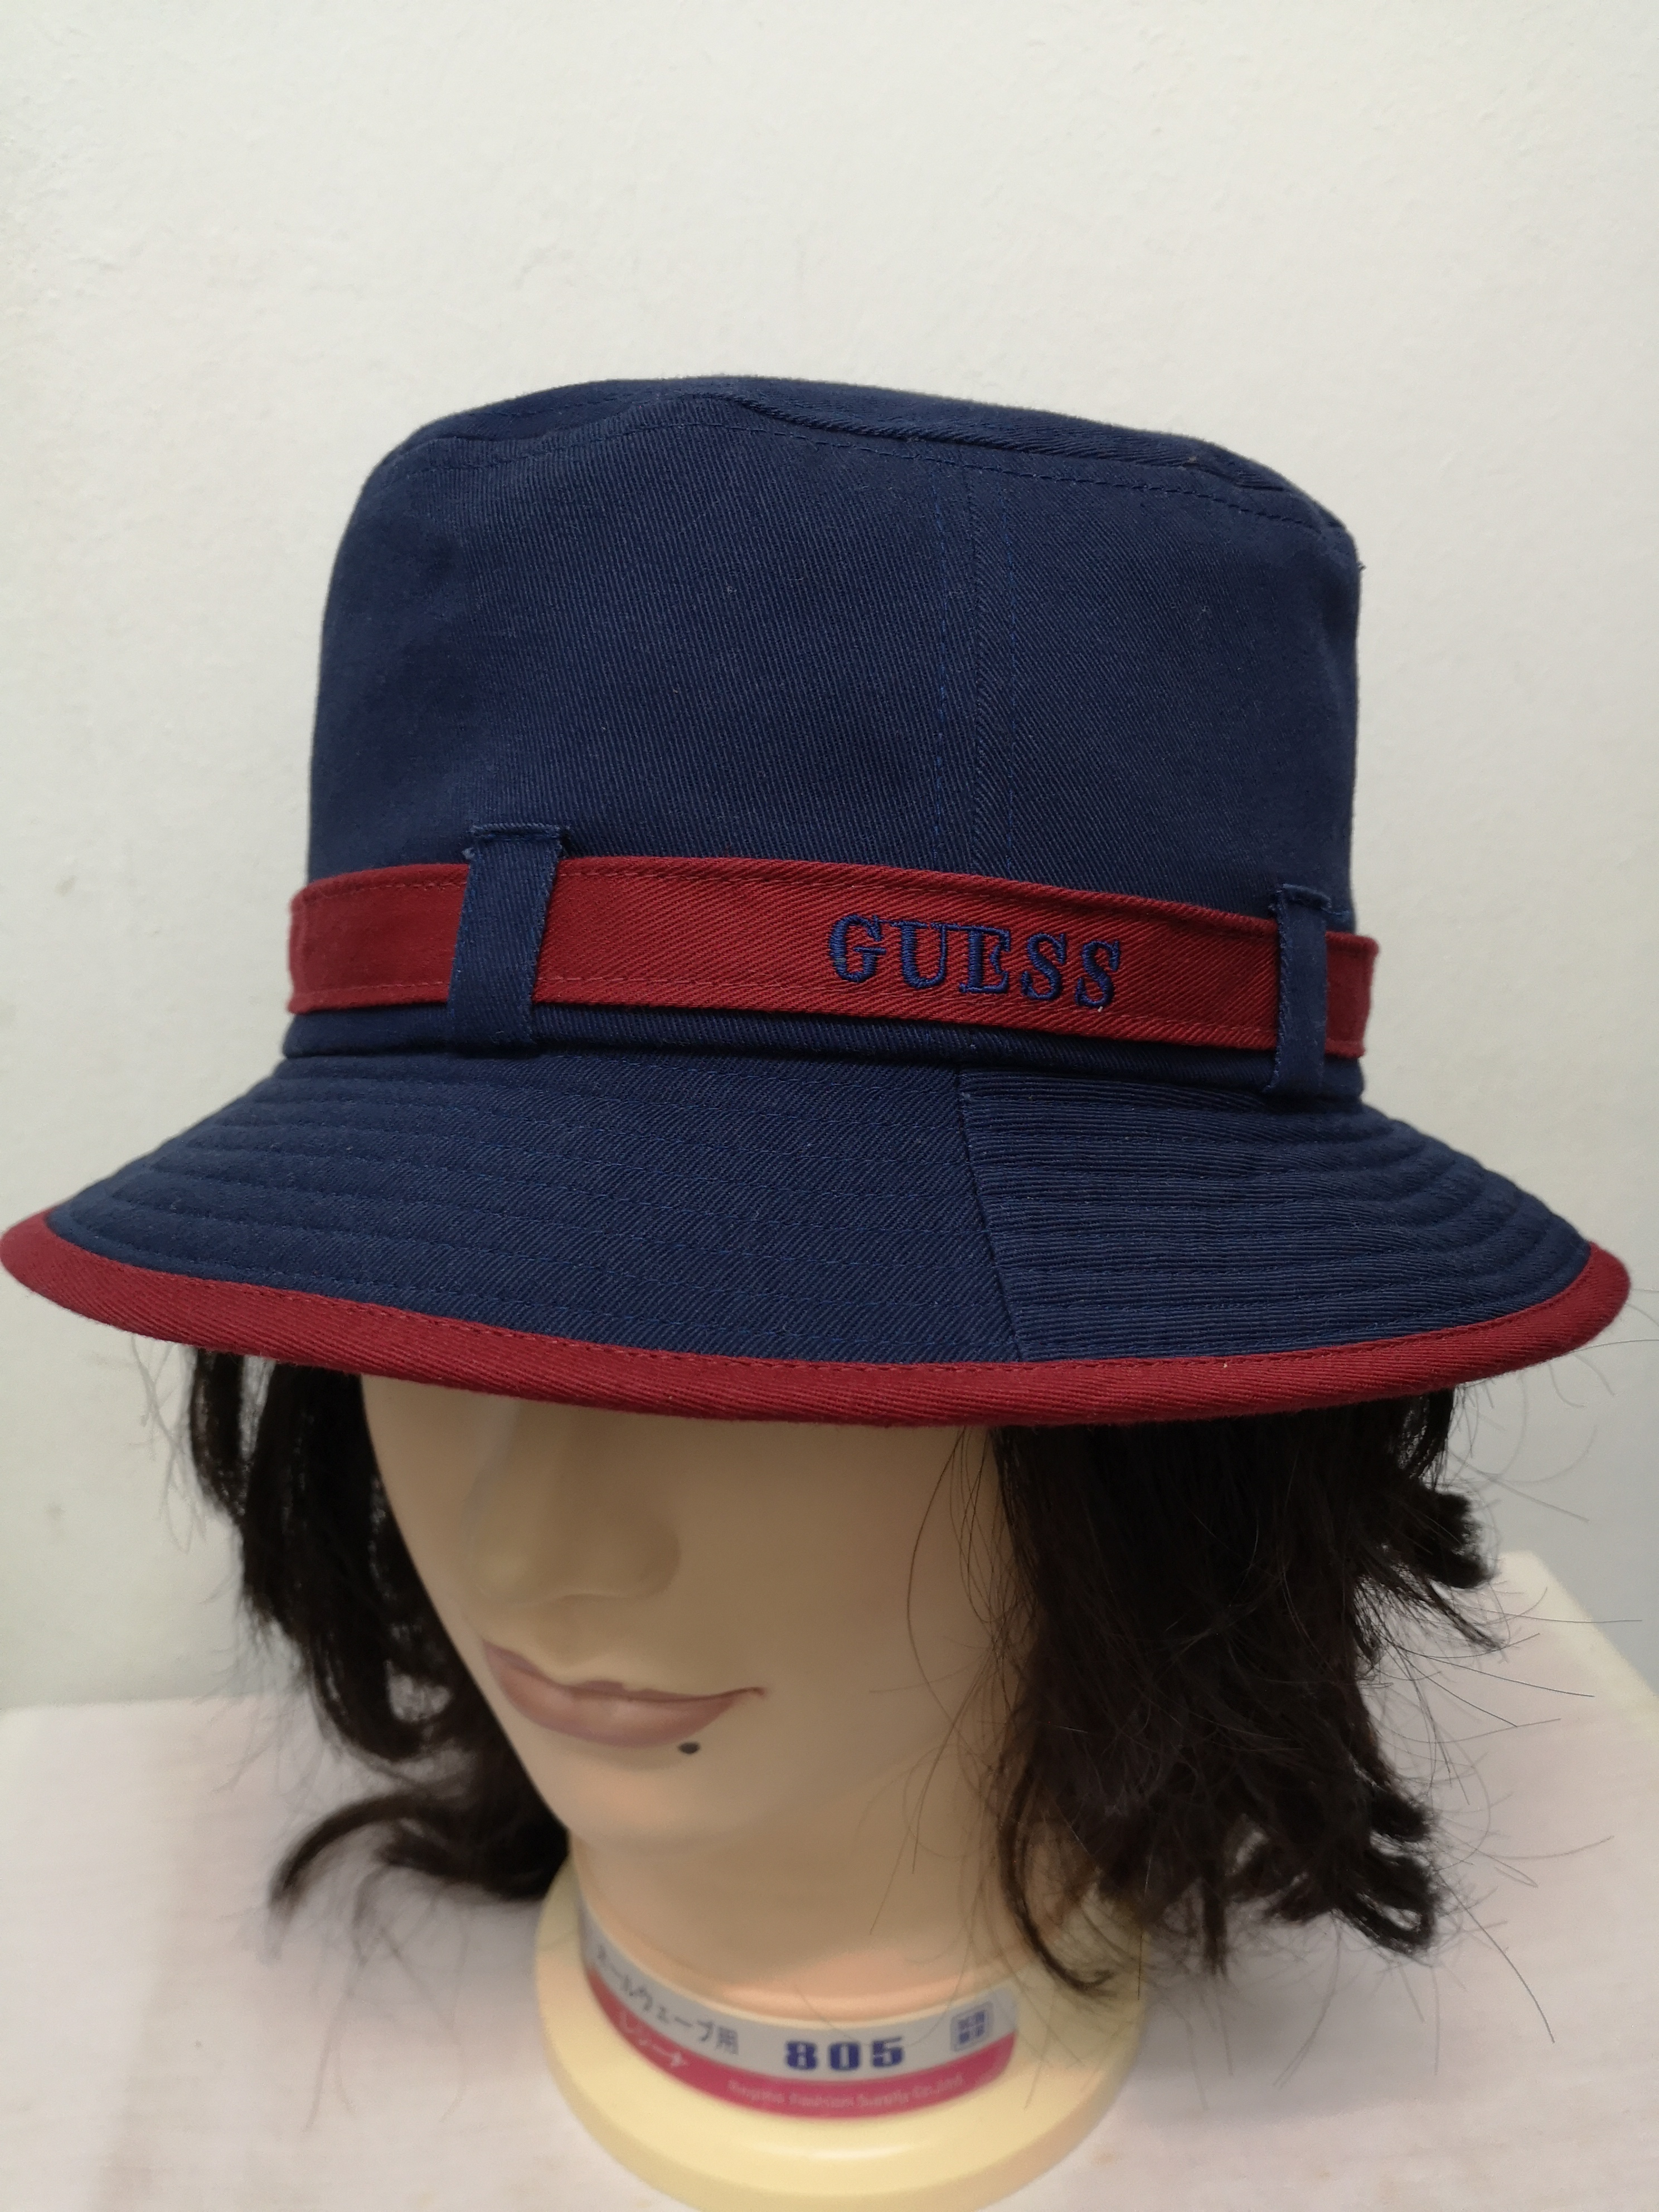 Guess Hat Vintage Guess Bucket Hat Vintage 90s Guess Bucket Solid Wool Polyester Red Designer Winter Cap Head Gear